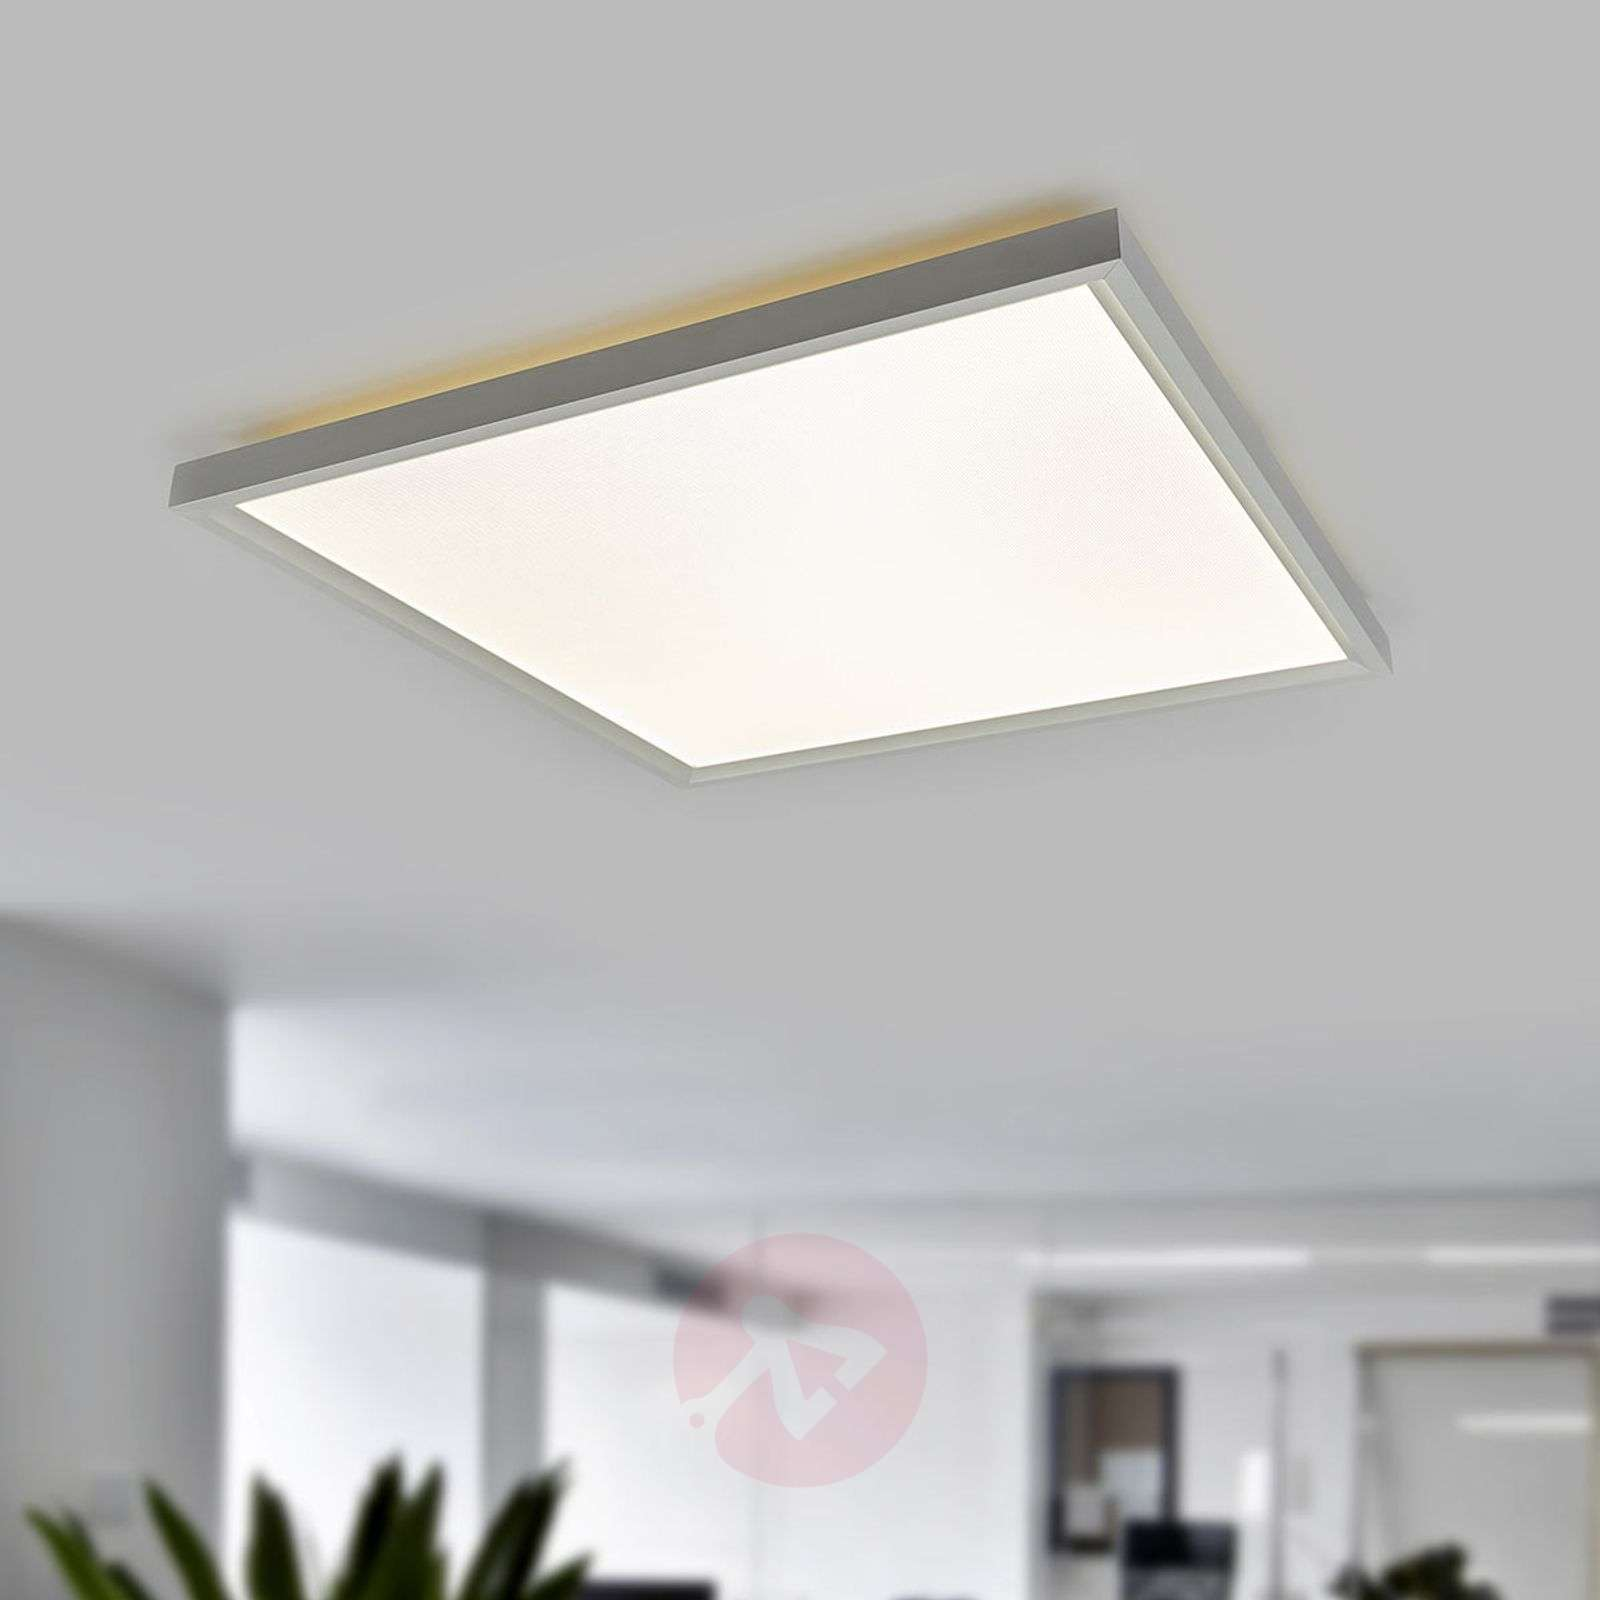 Rick Square Led Office Ceiling Lamp Dali 4 000 K Lights Ie